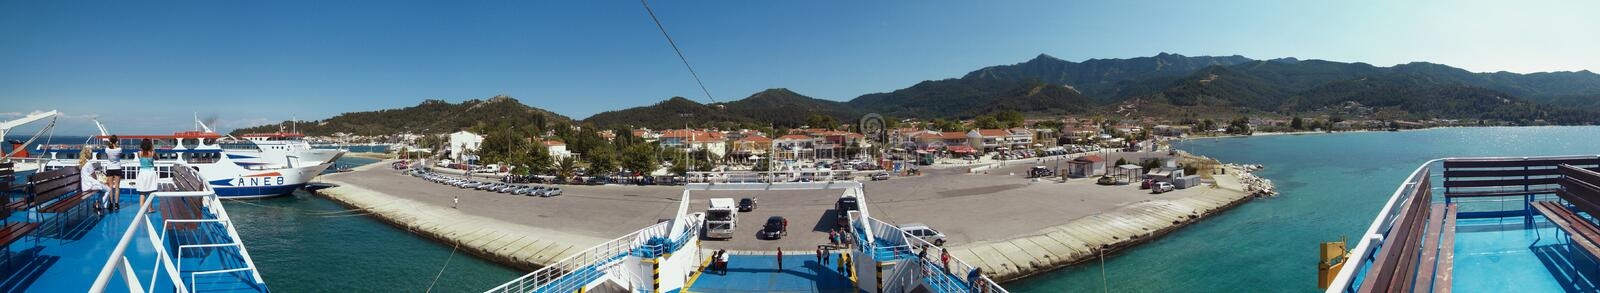 Thassos port. Unidentified people at Limenas port at Thassos, Greece. Port is served by ferry routes to and from Kavala and Keramoti stock images